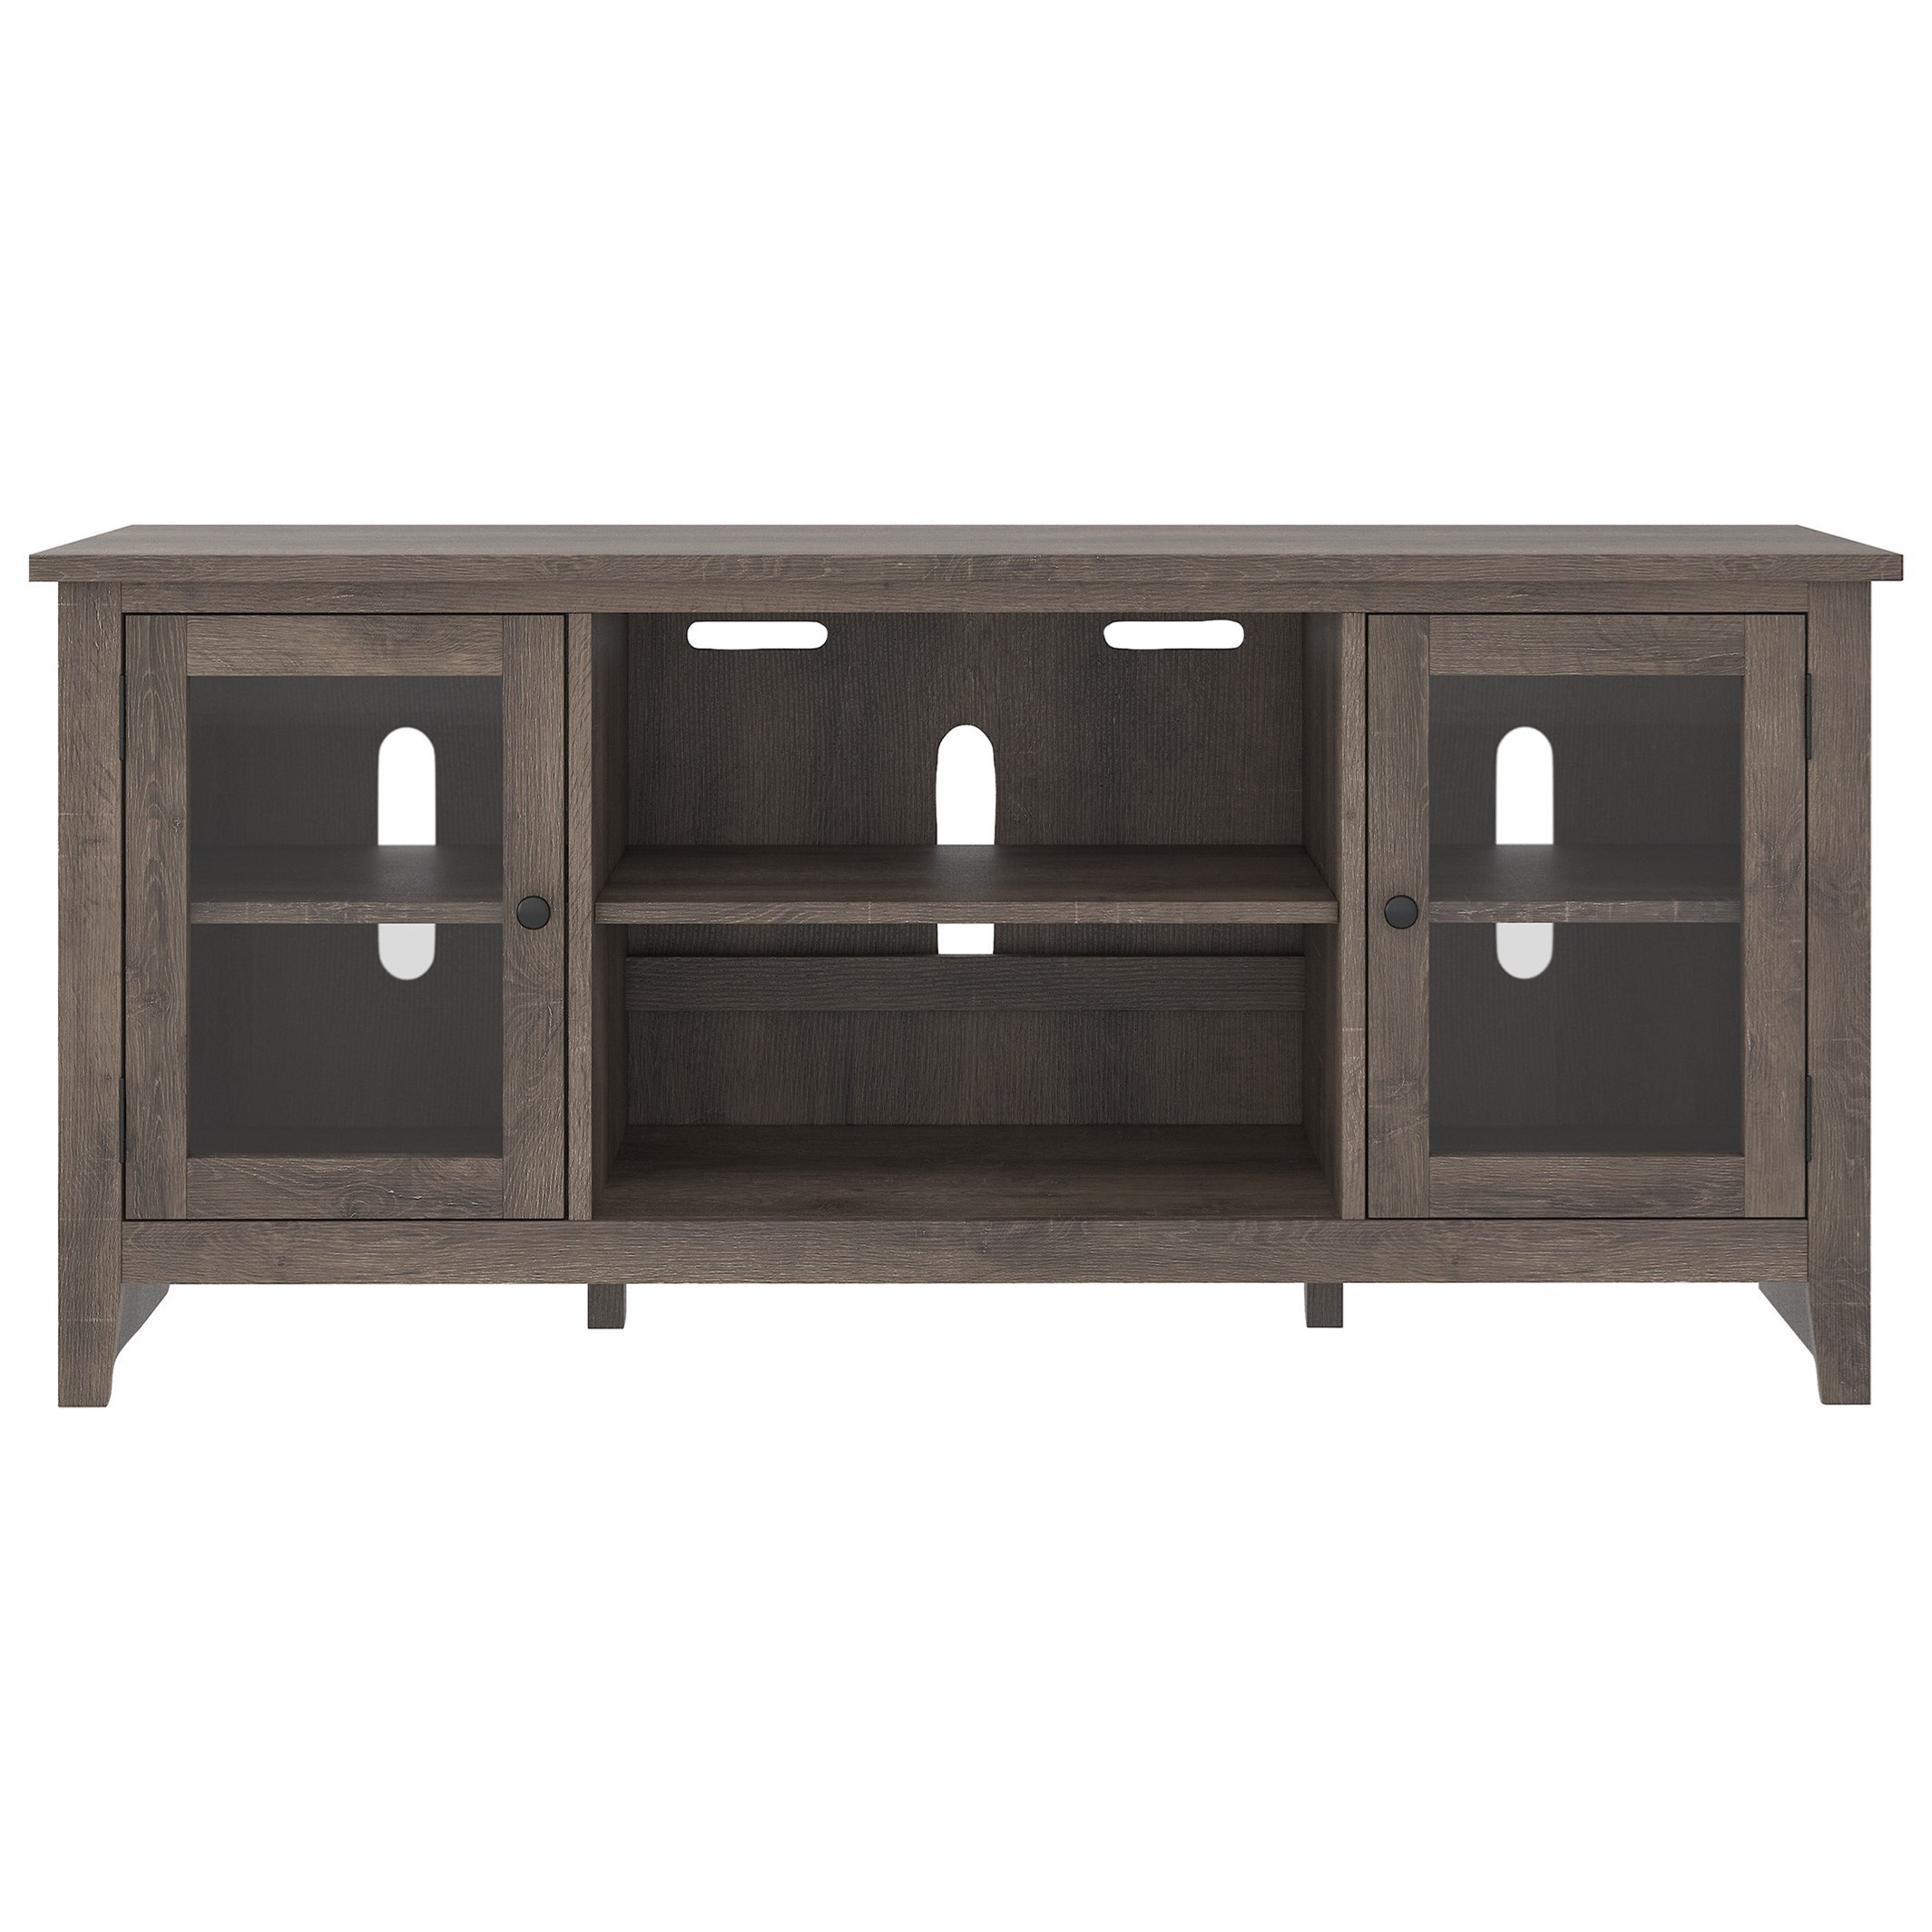 Arlenbry Large TV Stand by Signature Design by Ashley at Catalog Outlet